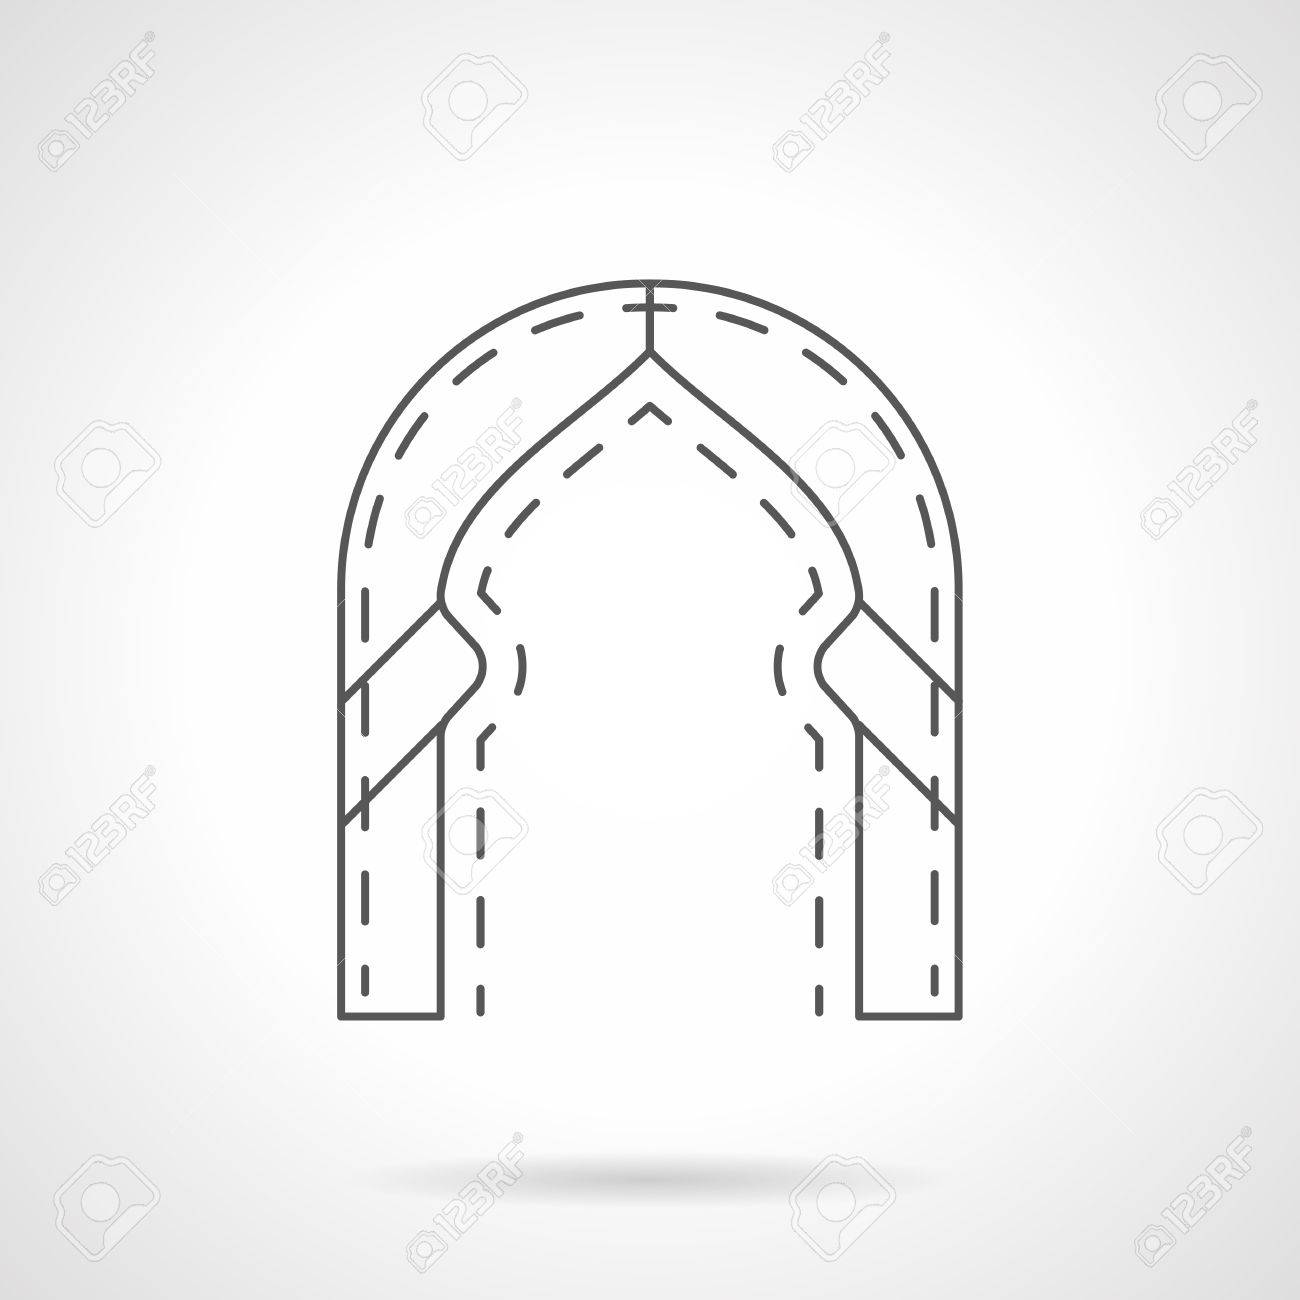 architectural arch in traditional oriental style  door and entrance  decorations in building  historical constructions